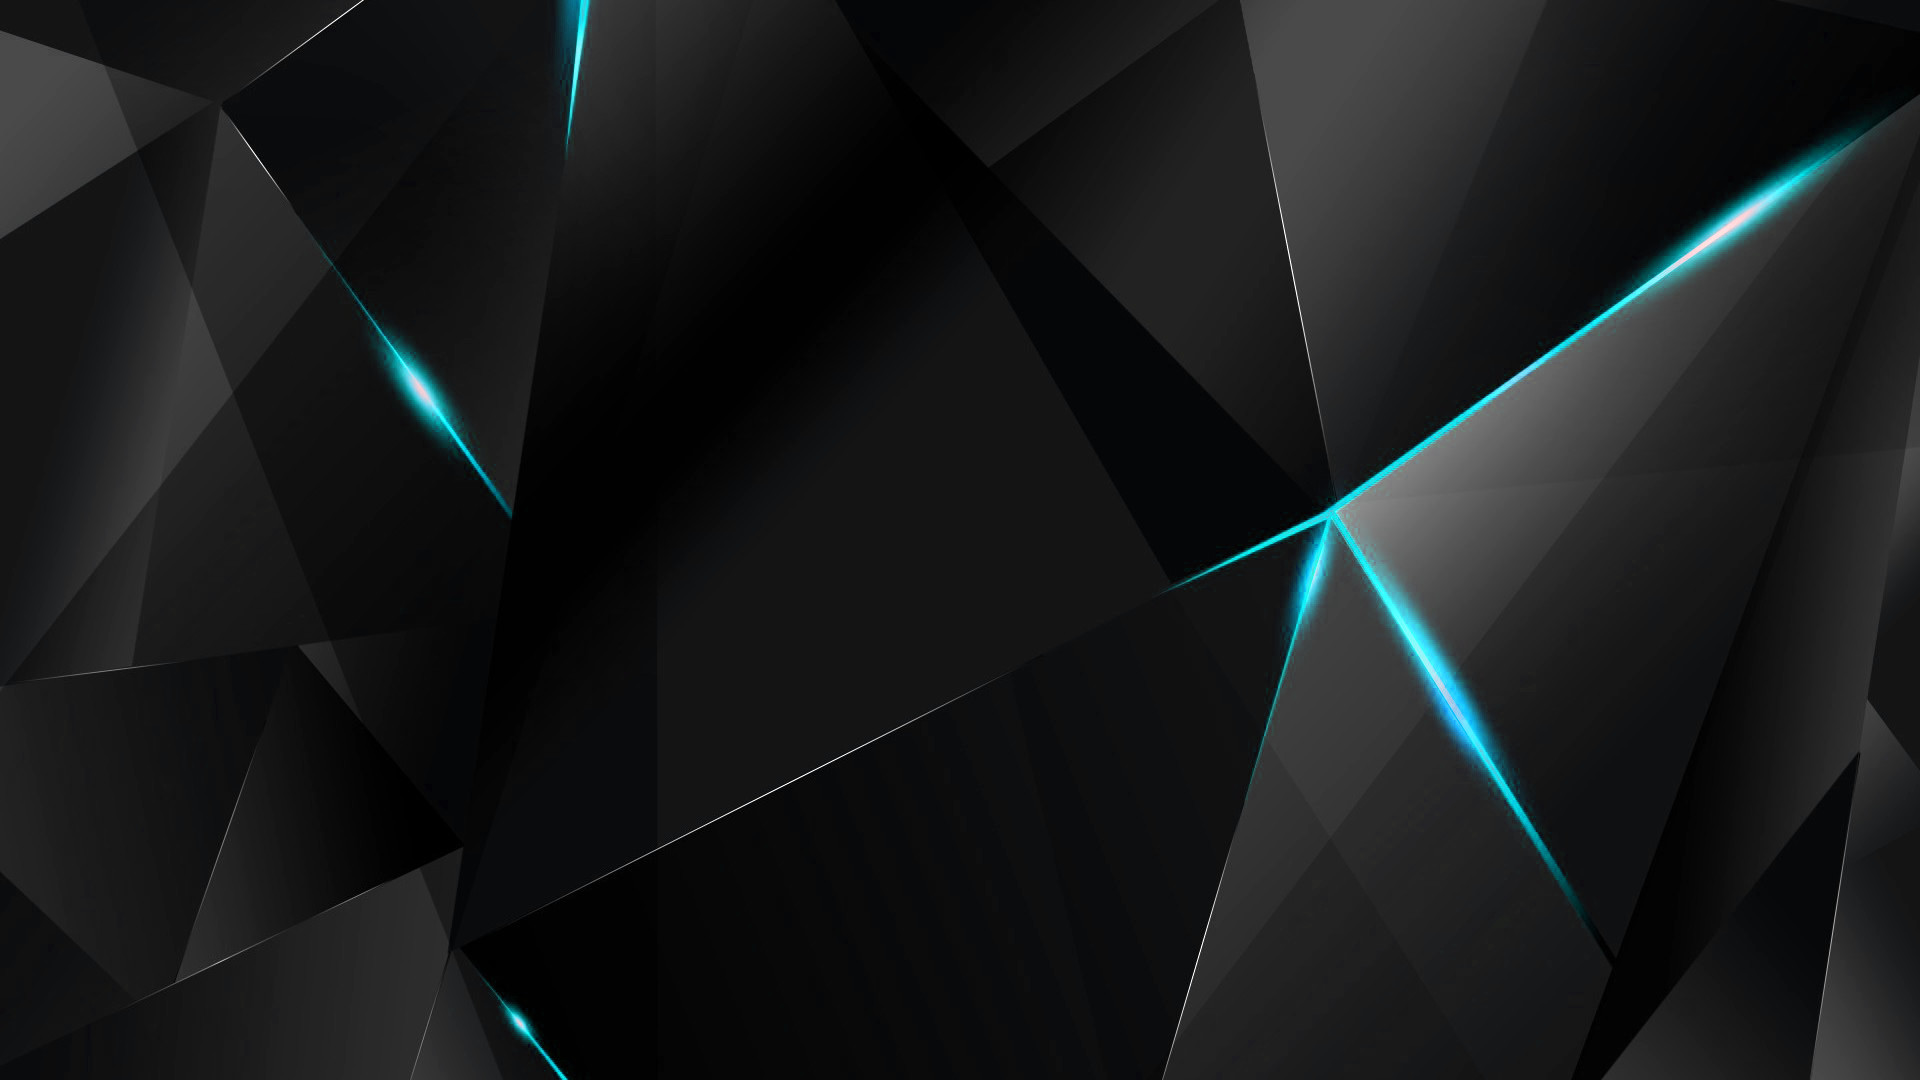 10 Latest Blue Abstract Wallpaper Hd Full Hd 1080p For Pc: Black And Cyan Wallpaper (87+ Images